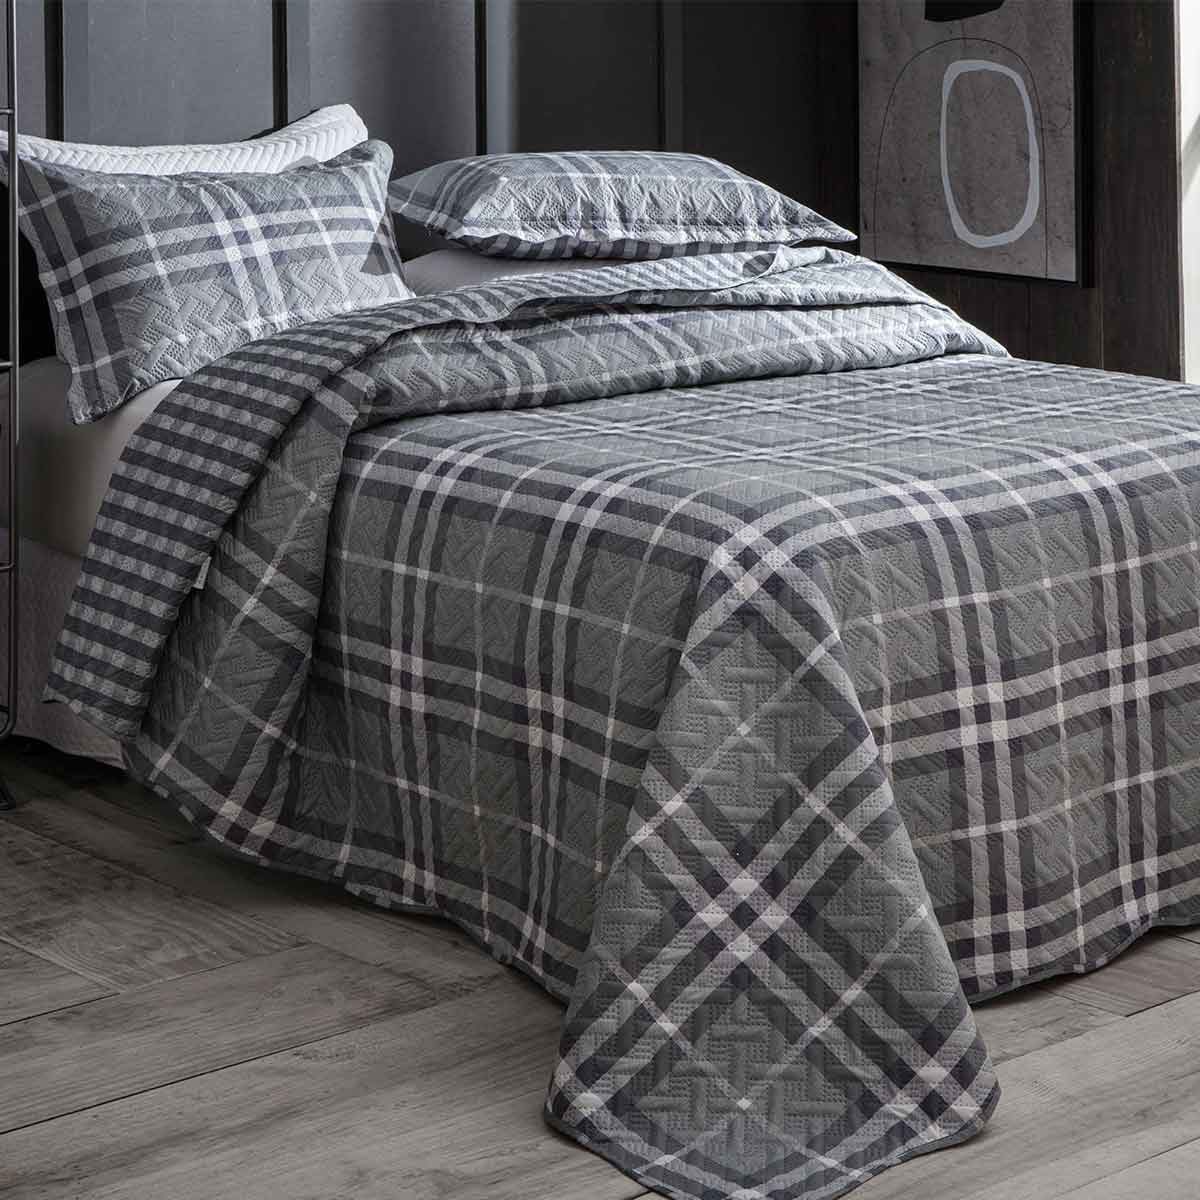 Cobreleito Patchwork Ultra Solteiro 2Pcs London Kingston 1